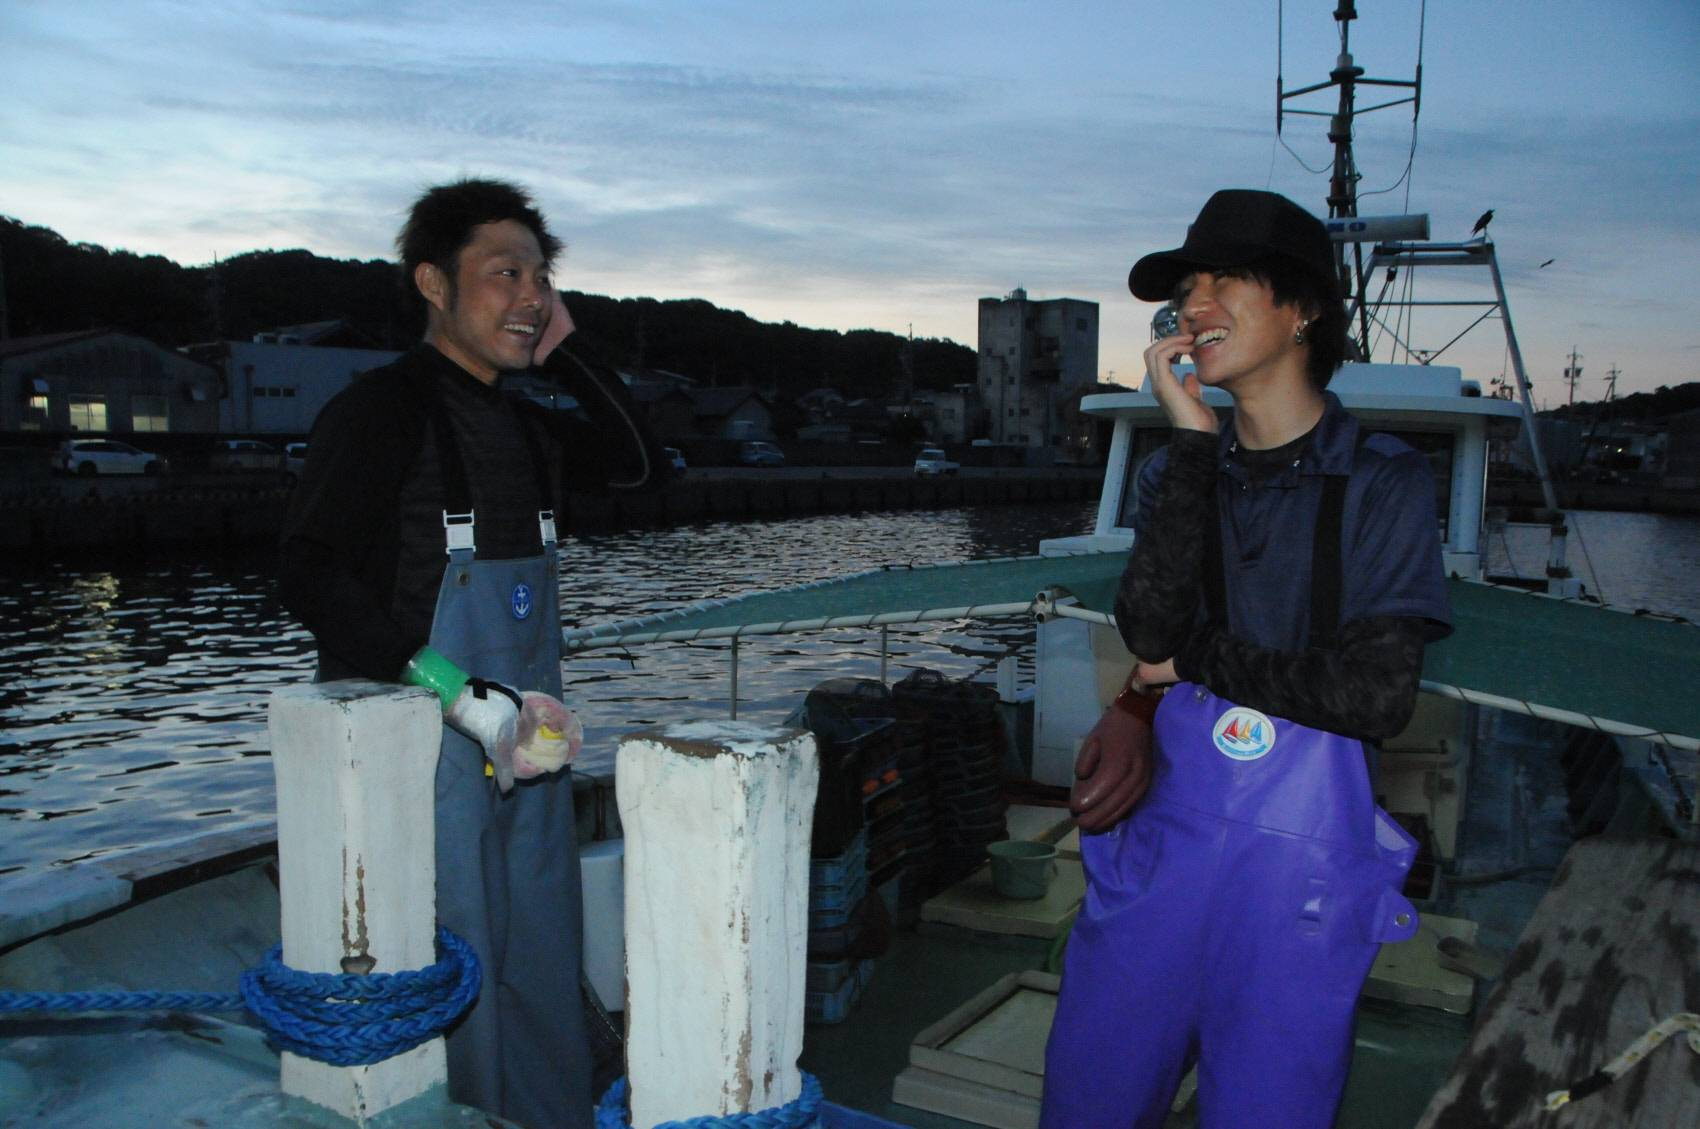 Genta Okasaka (right) speaks with fisherman Keita Urata at Chigara Port in Gamagori, Aichi Prefecture. | CHUNICHI SHIMBUN